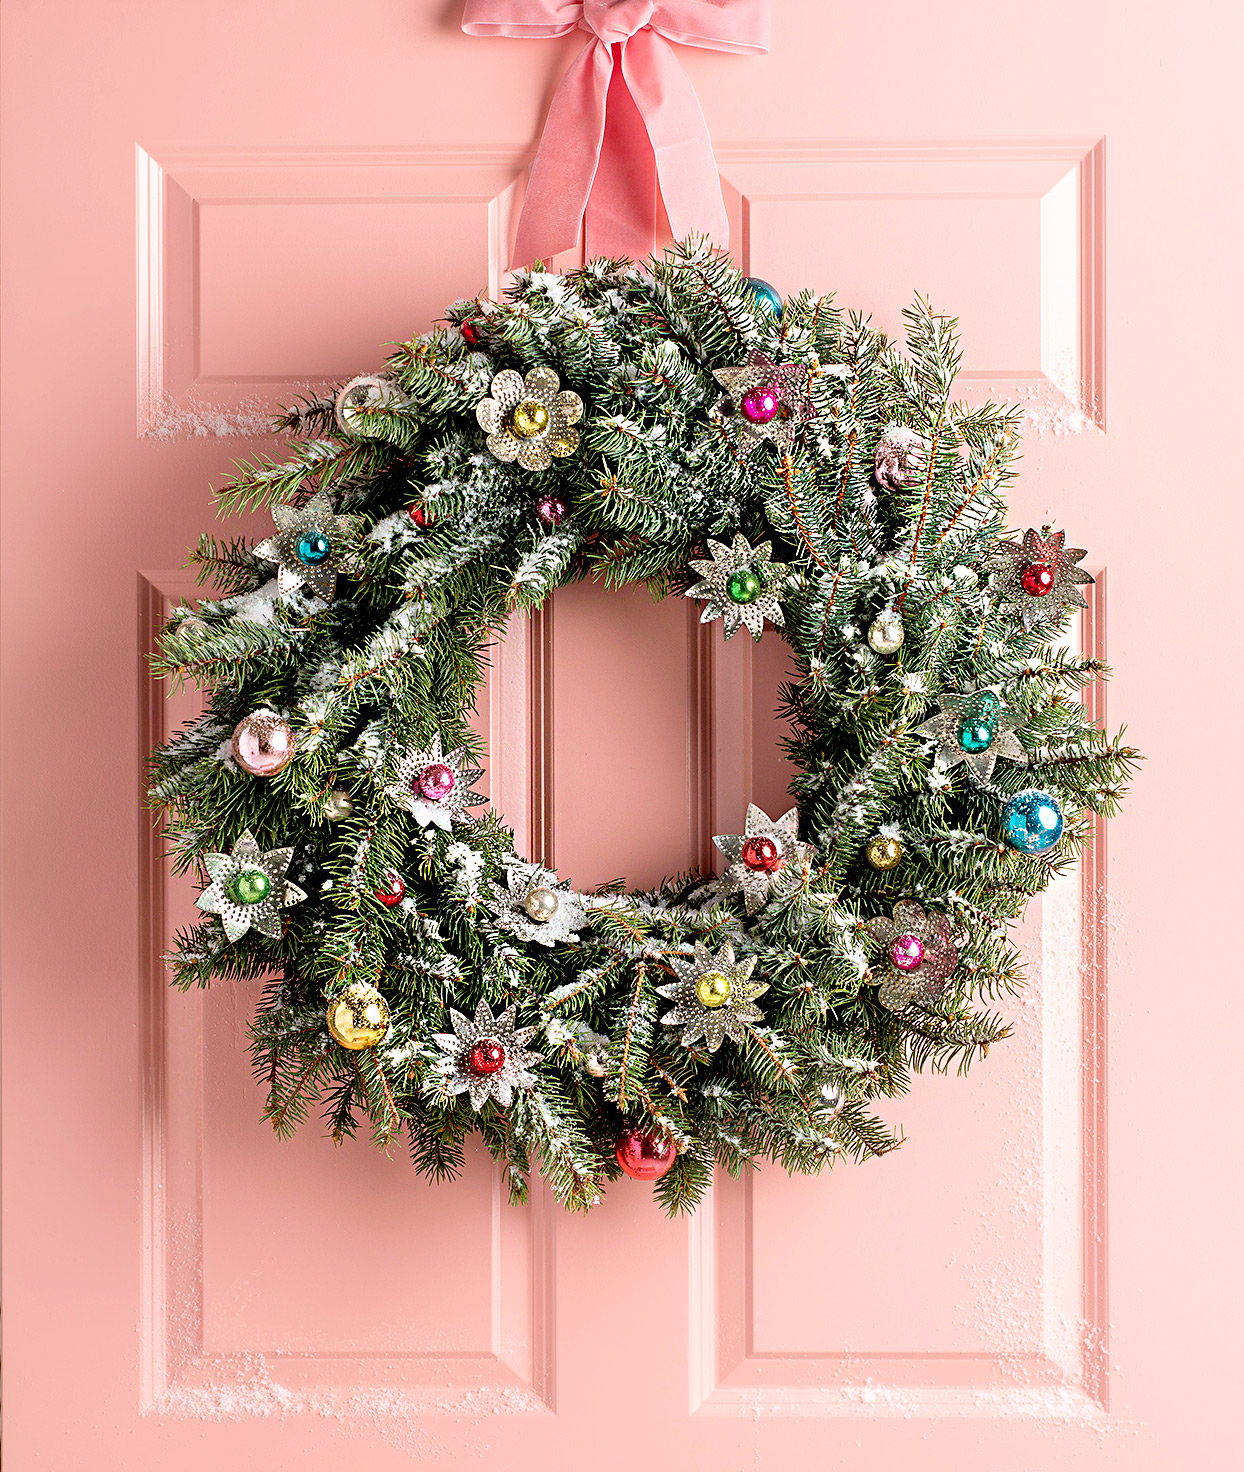 Door wreath with ornaments and pink bow